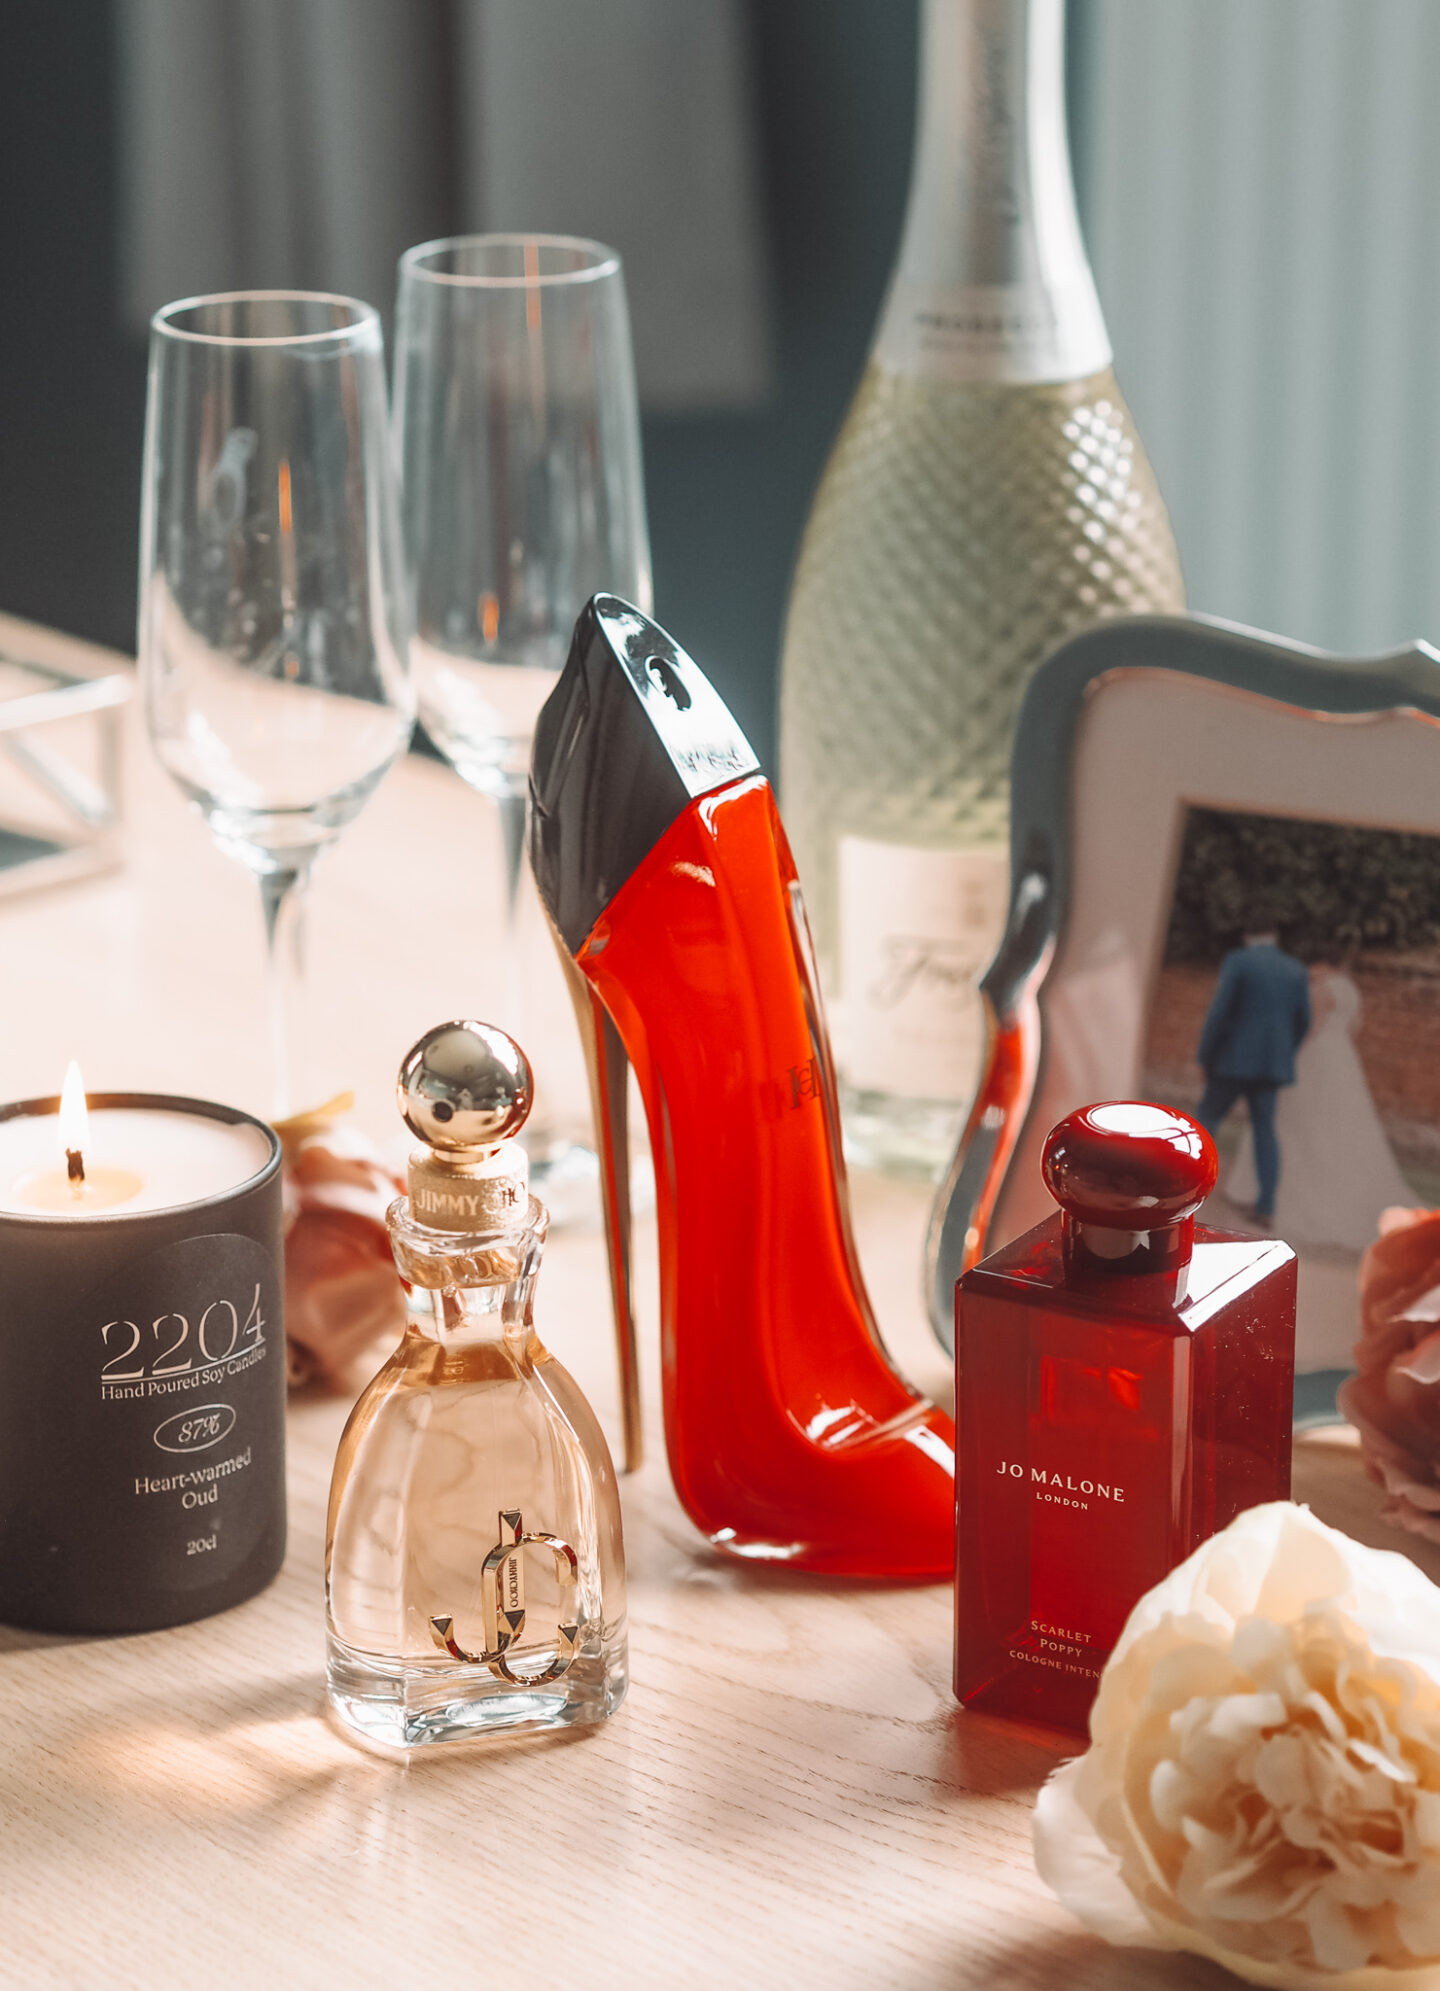 Three Seductive Scents To Treat Yourself (Or A Loved One) To This Valentines Day jimmy choo i want choo carolina herrera very good girl jo malone scarlet poppy